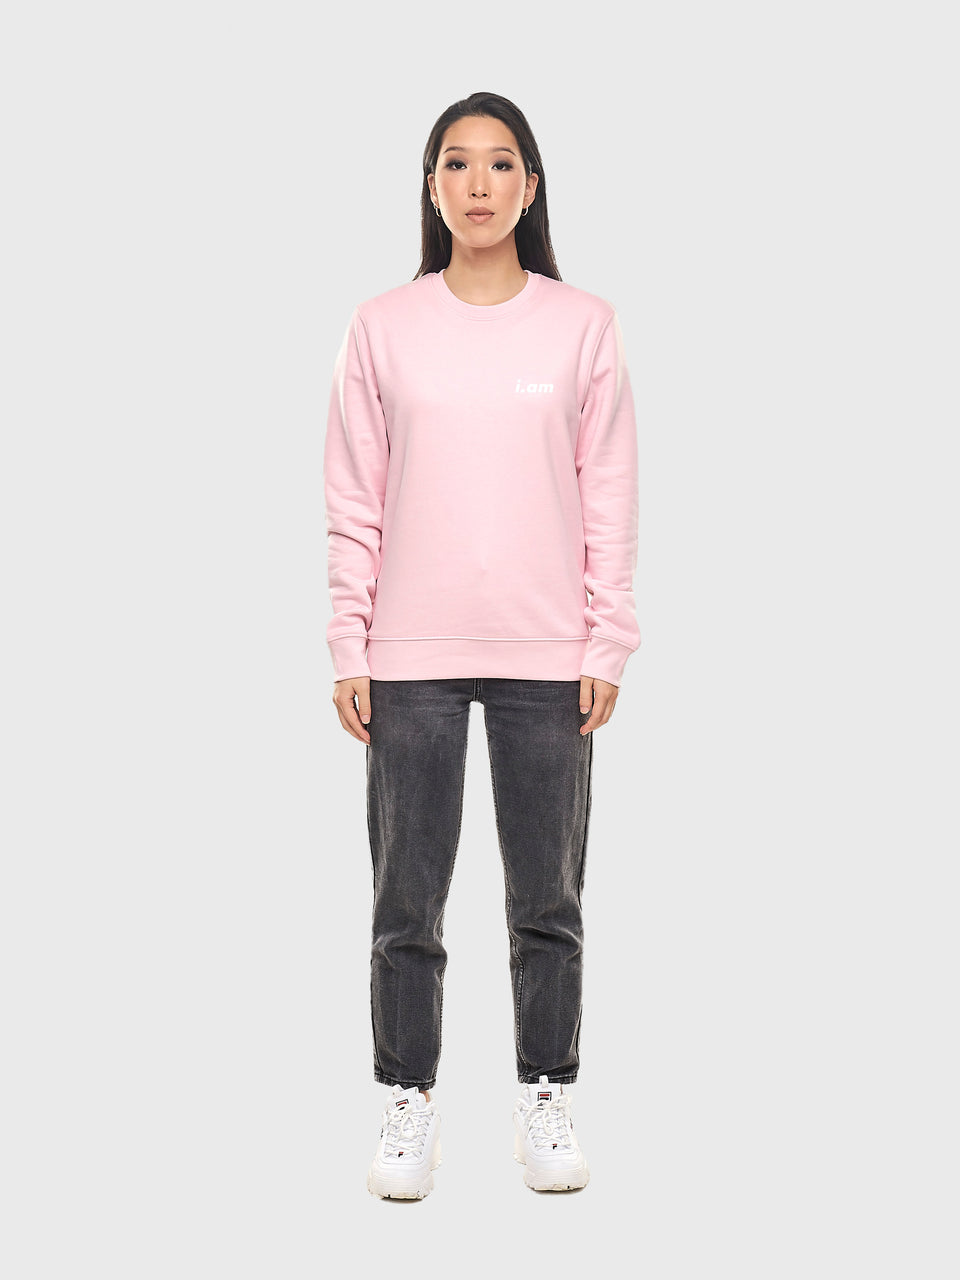 Made in London - Pink - Unisex sweatshirt